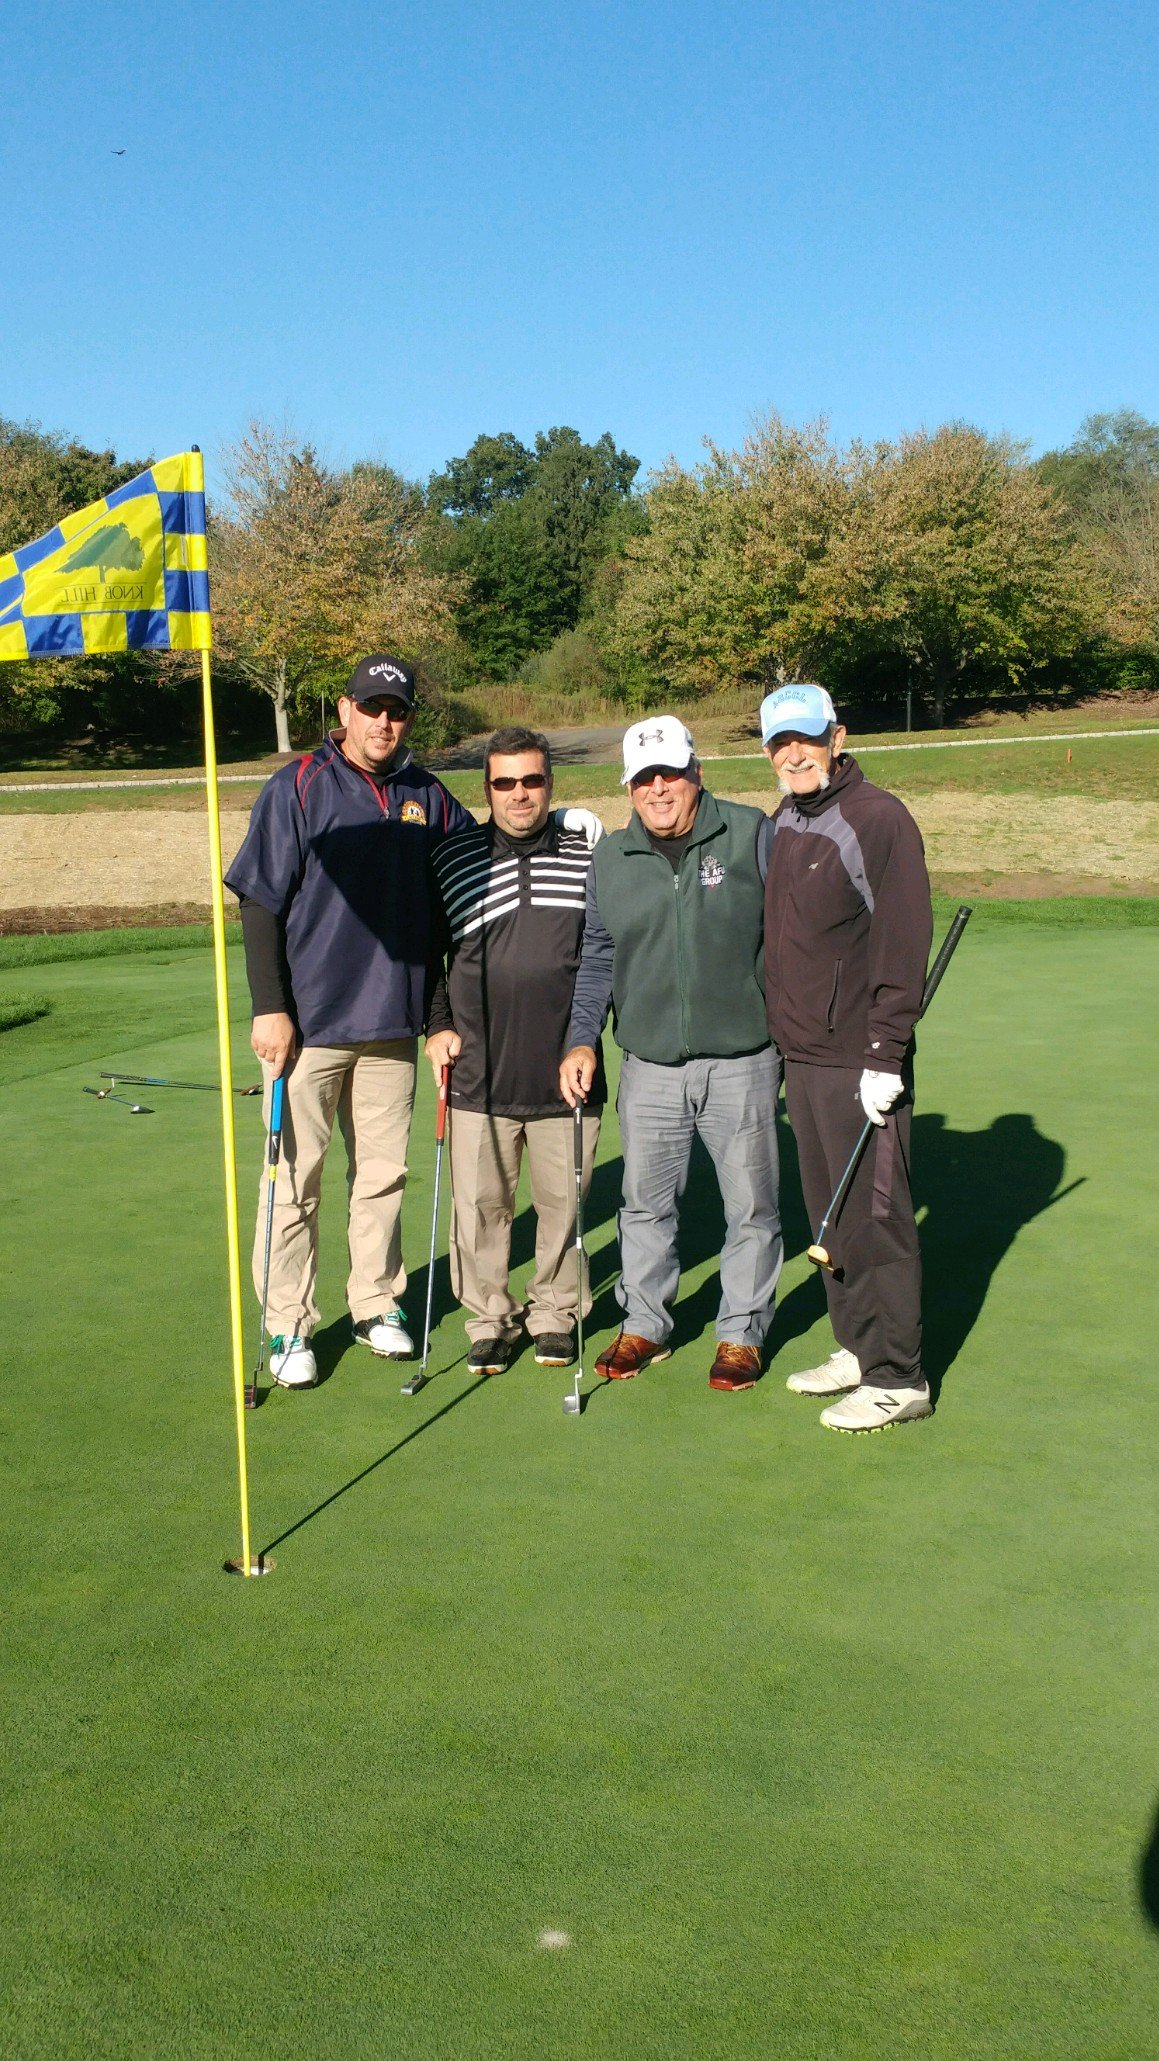 Looking determined, Team Frontera takes to the links (from left), Chad Frontera, Bill Tigar, Roger Frontera and Joe Manzo